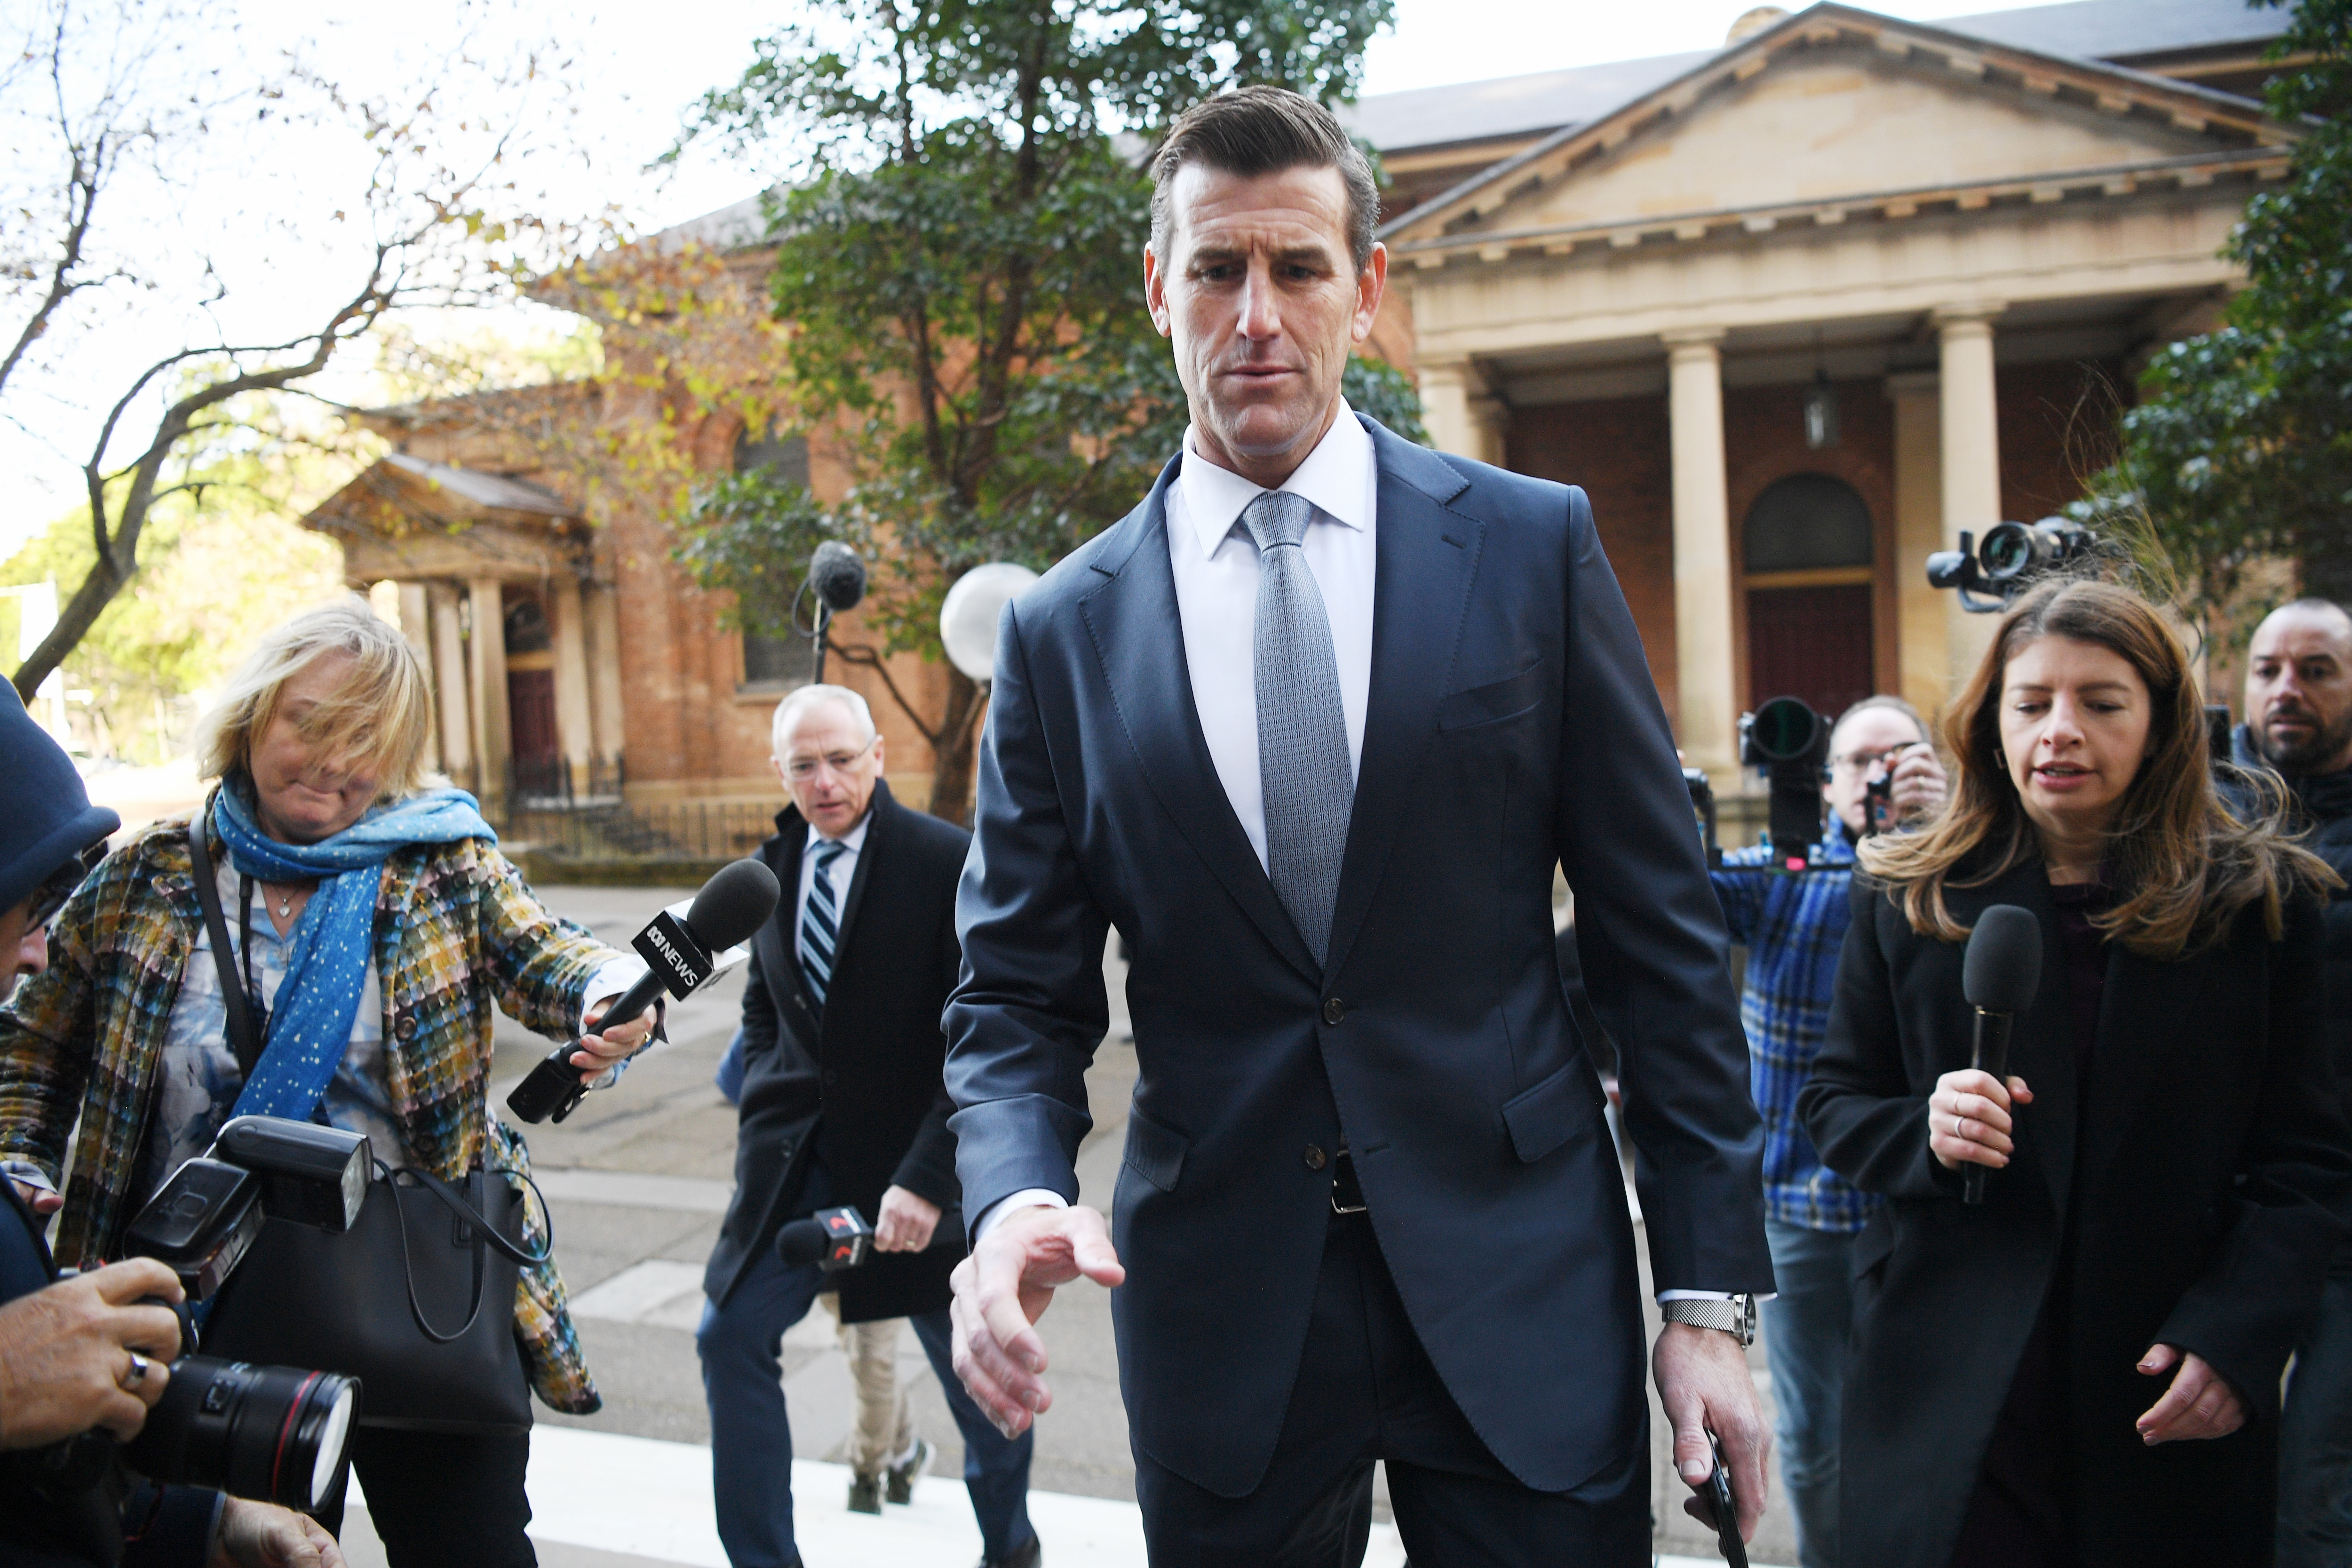 News articles 'destroyed' Ben Roberts-Smith's reputation, barrister says